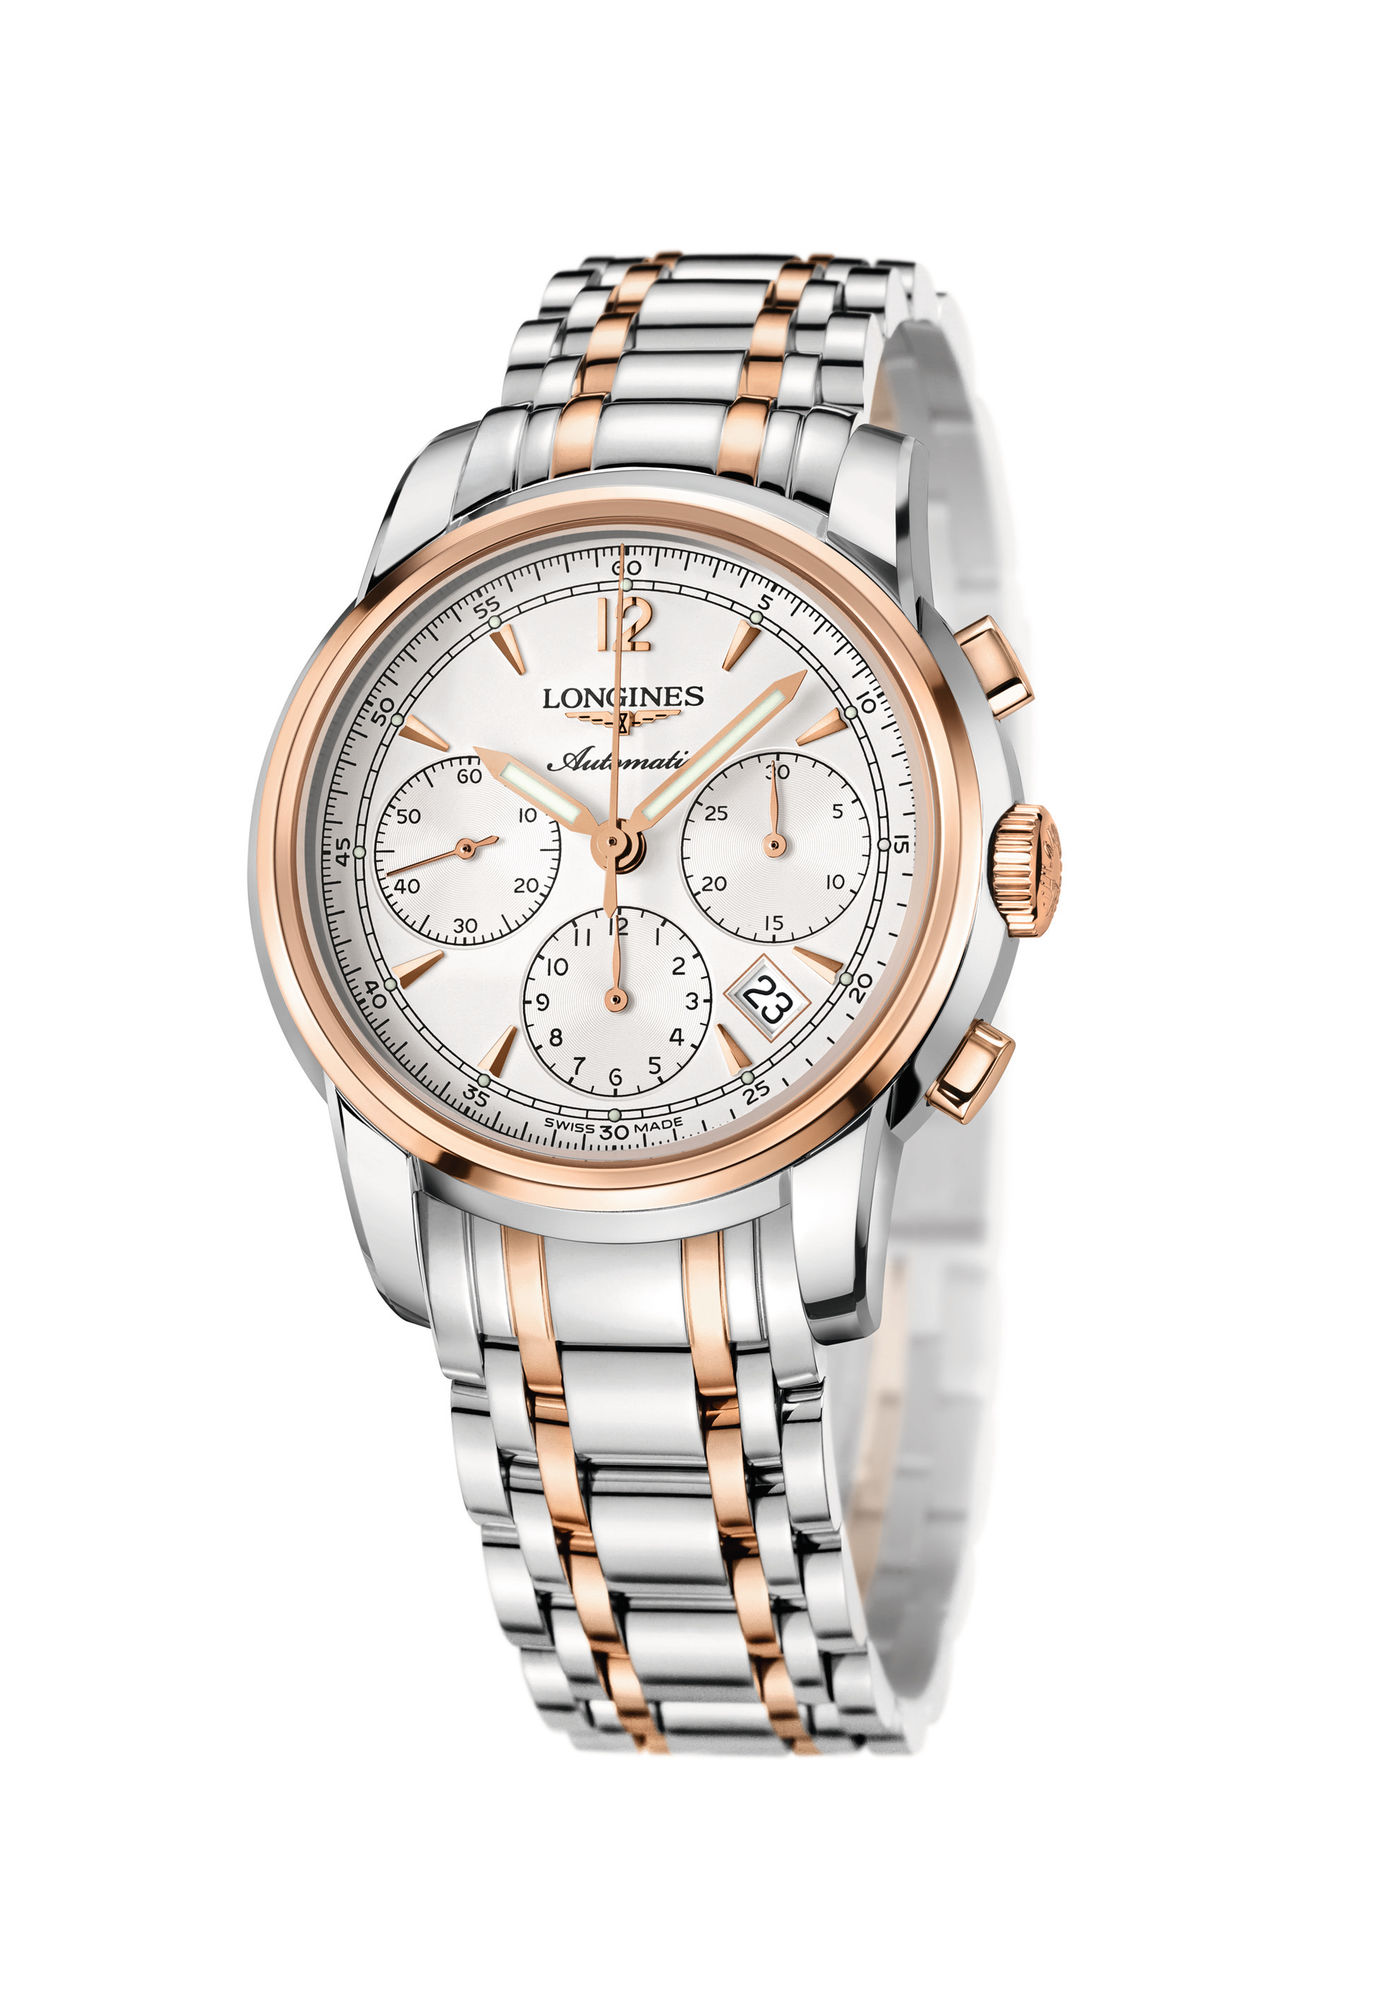 Longines Flat Racing Event: Longines awards elegant timepieces to owner, trainer and jockey of Belmont Stakes winner, Palace Malice 6